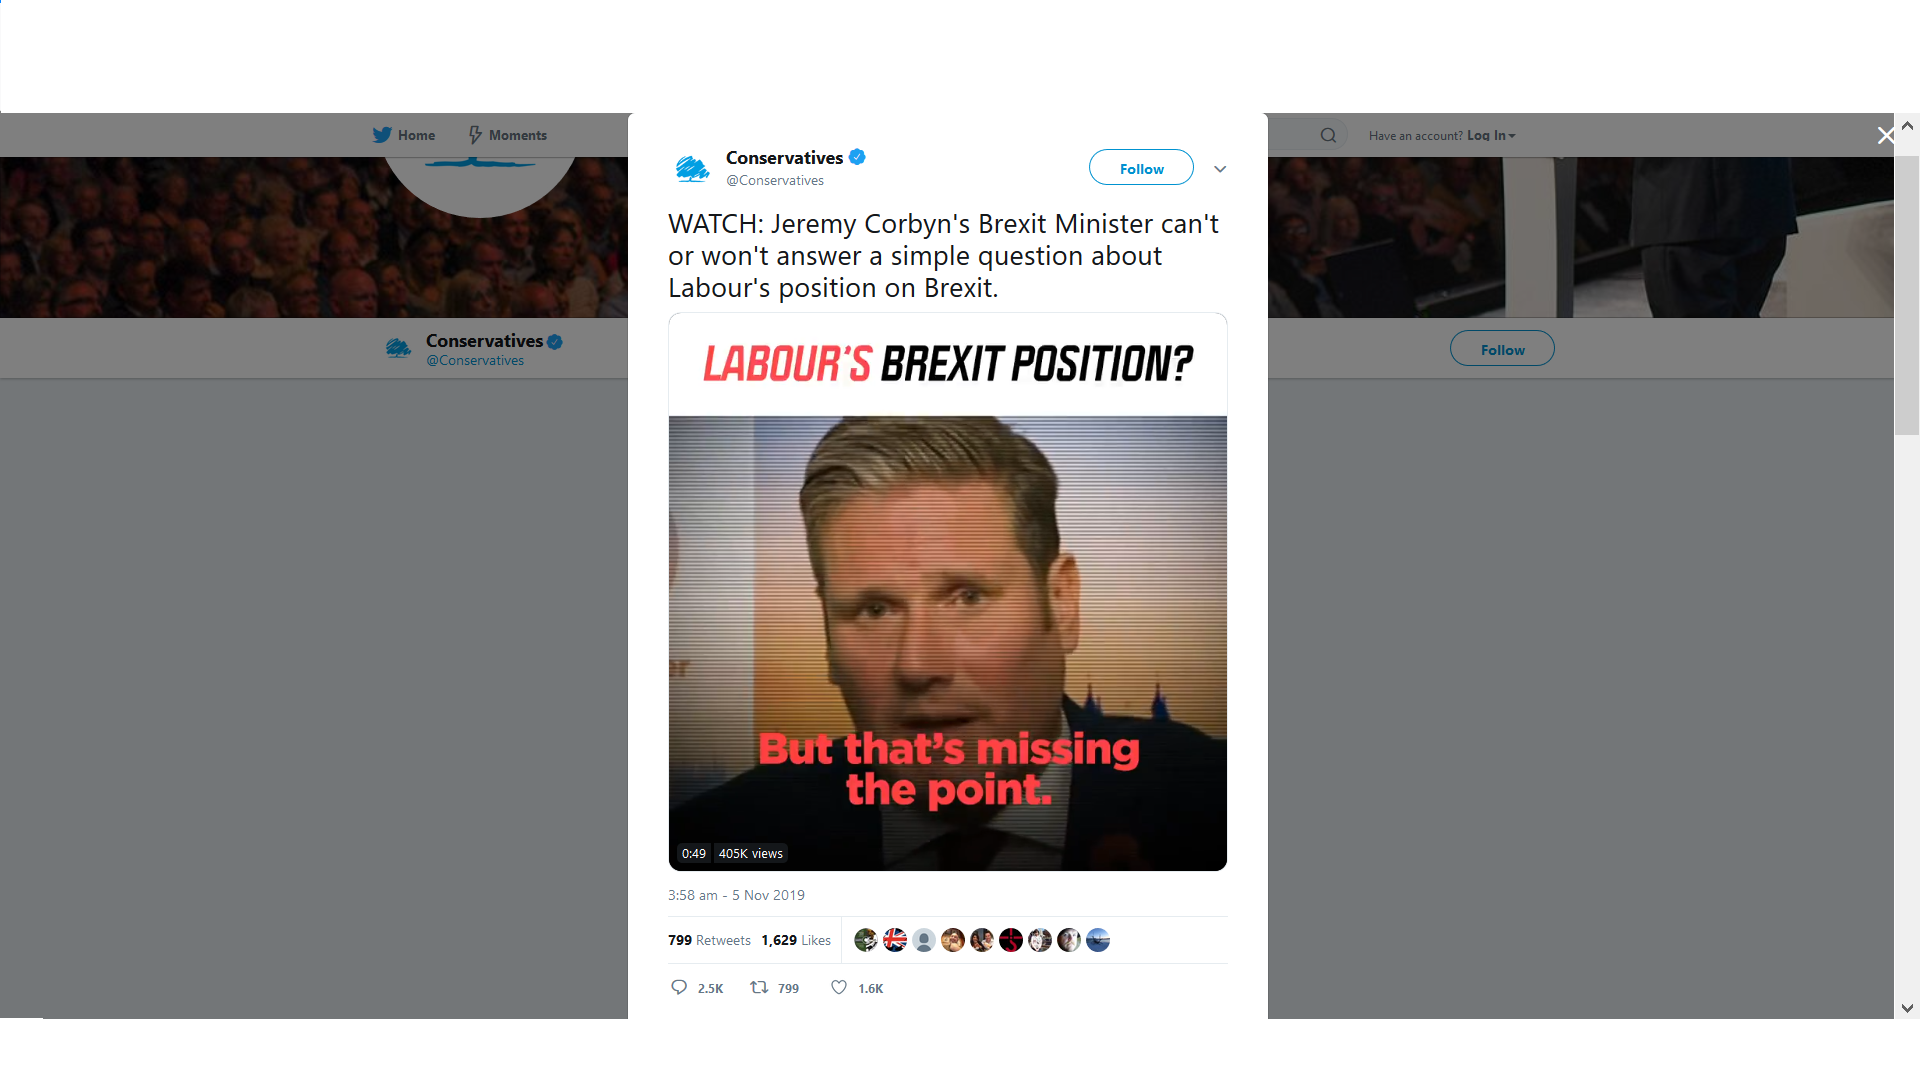 A tweet from the Conservative party questioning the Labour parties brexit policy captioned 'LABOUR'S BREXIT POSITION?'